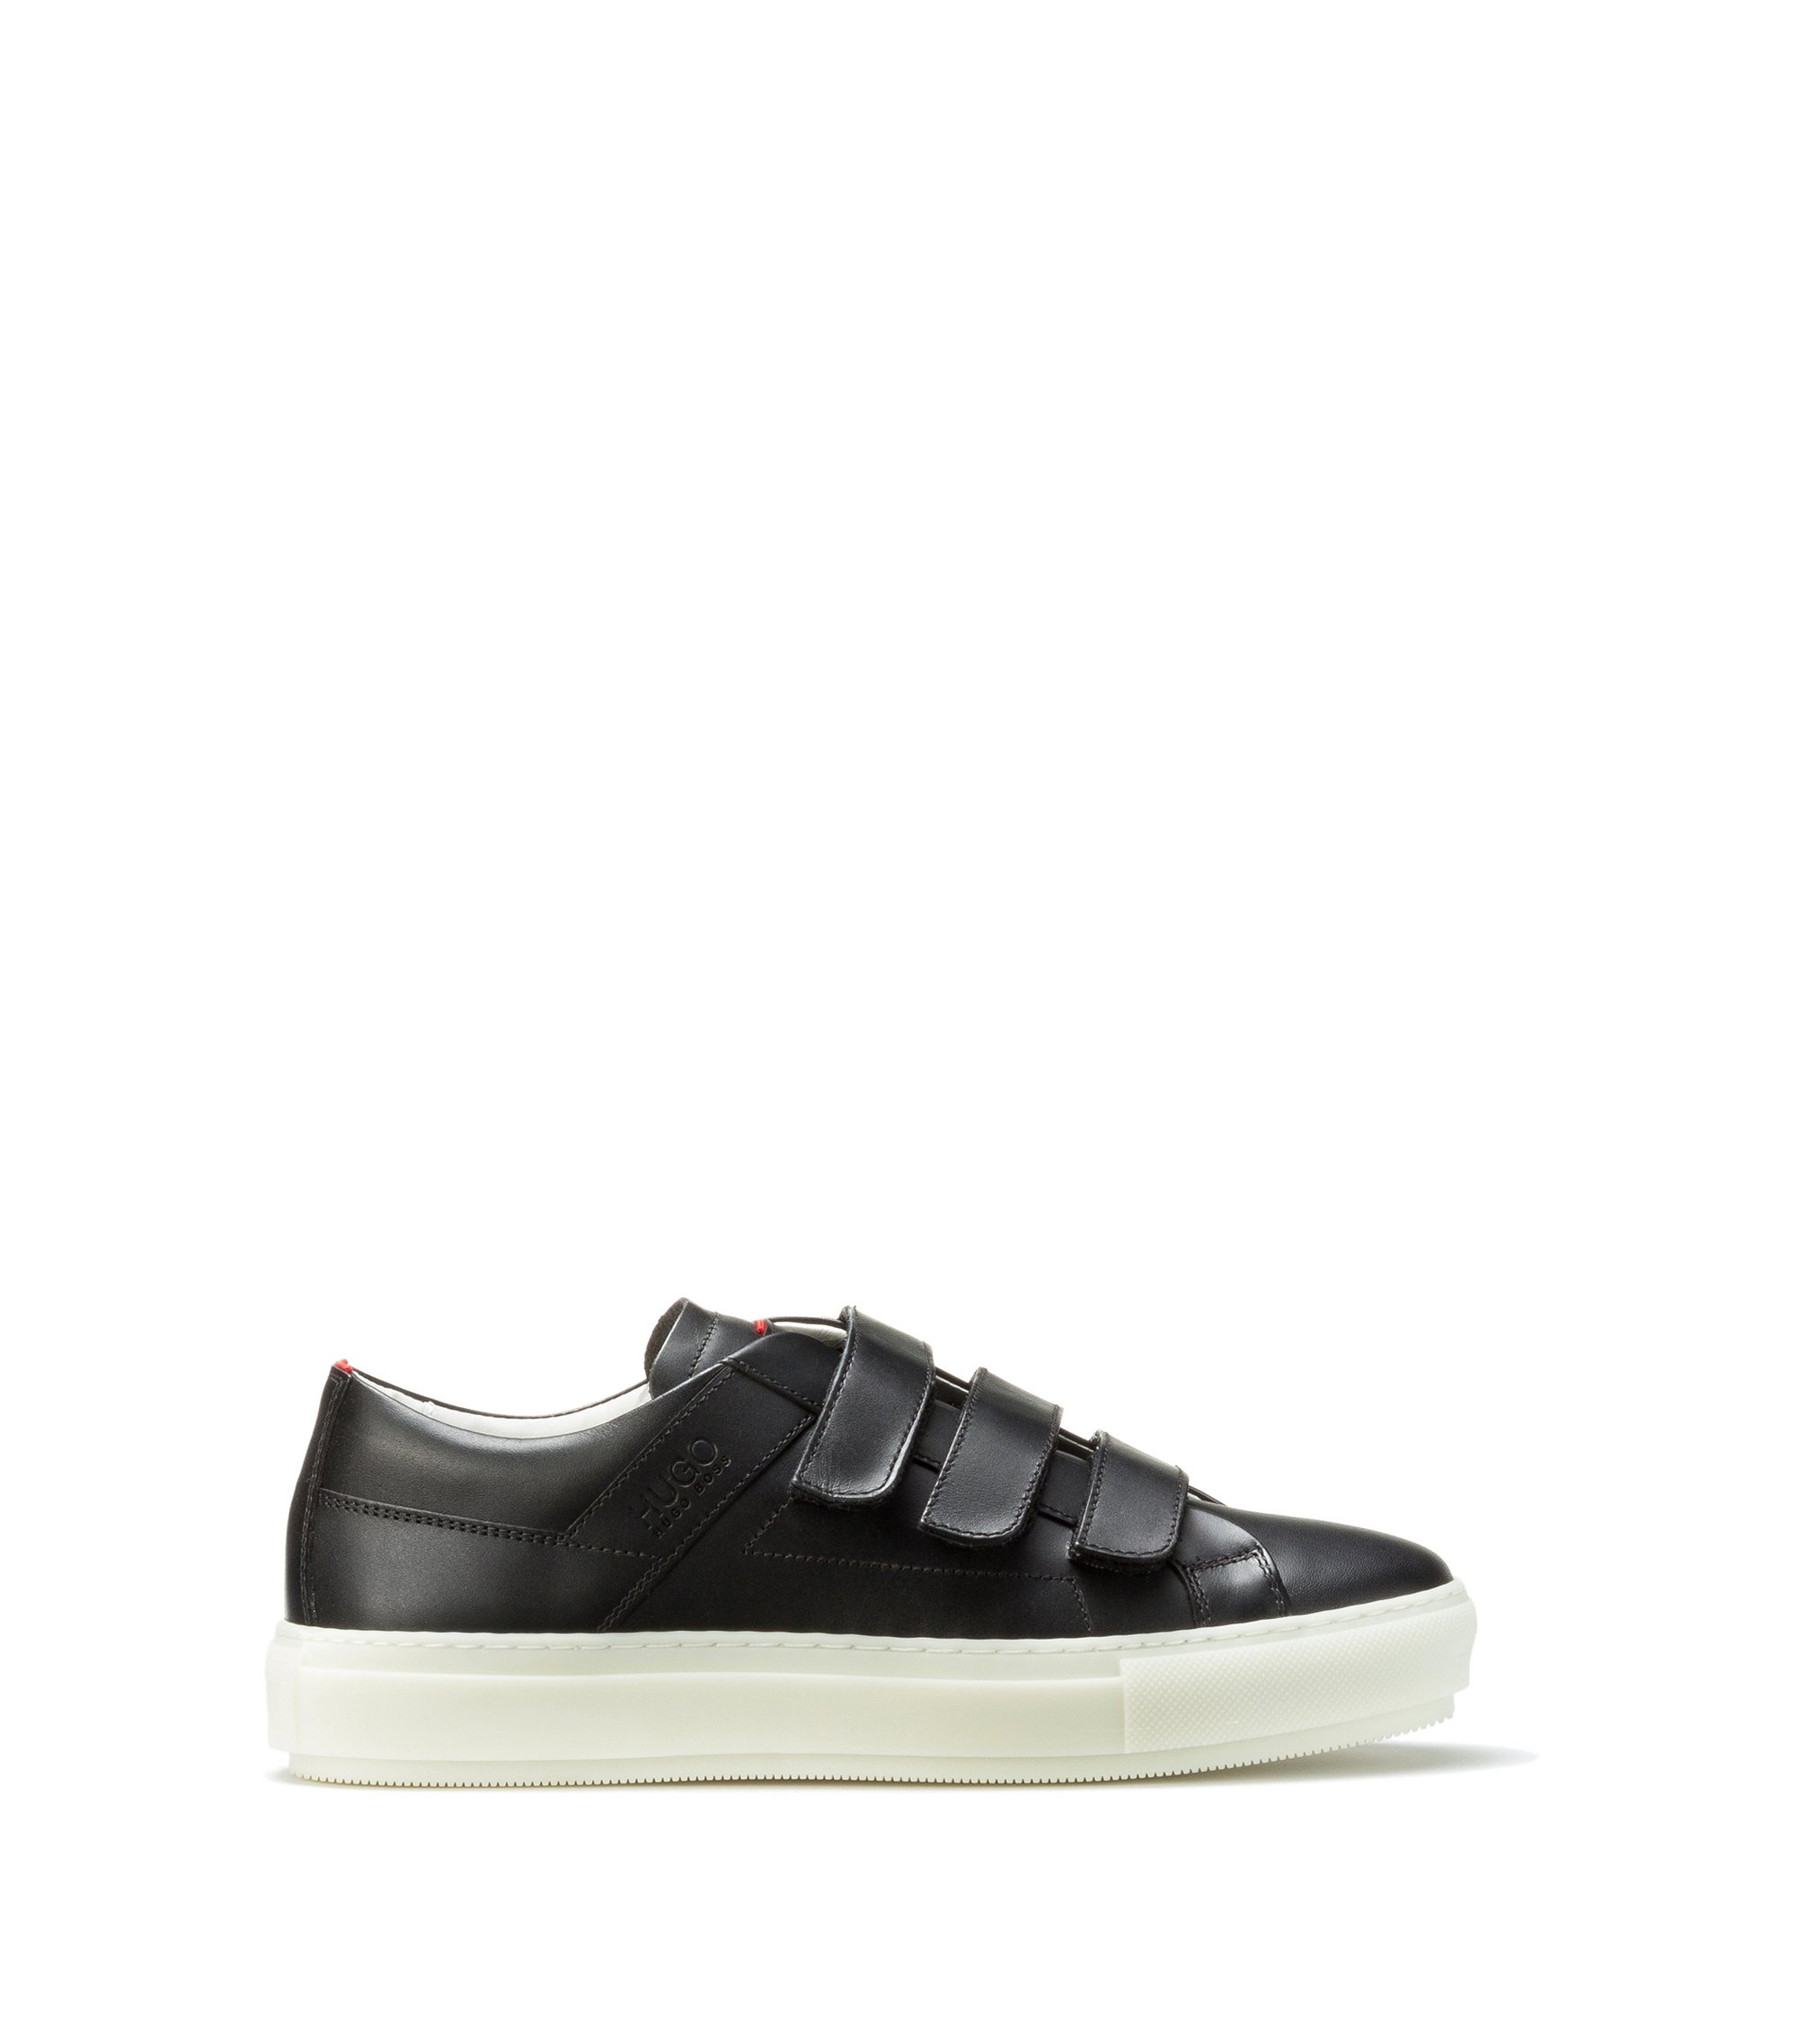 Leather trainers with triple touch-fastening straps, Black